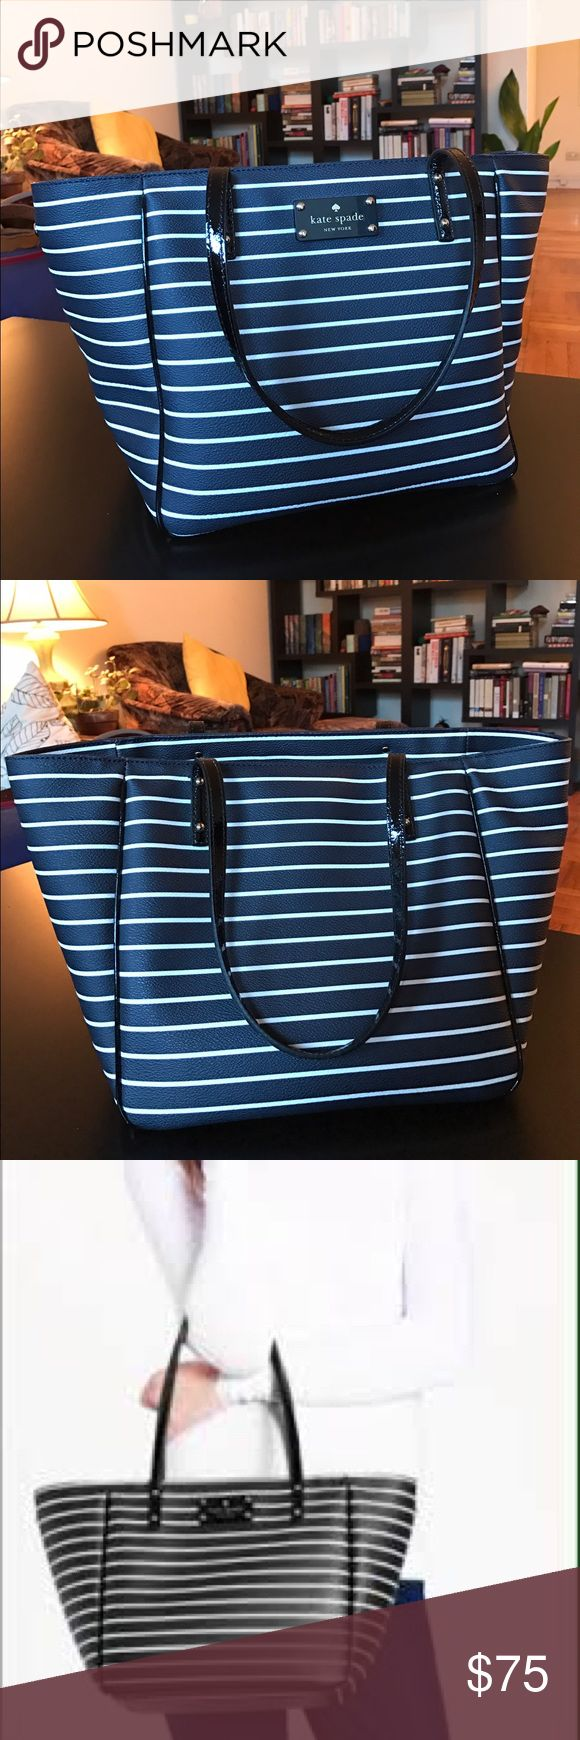 Kate Spade City Stripe Sidney Tote Brand new navy & creme striped tote with patent leather straps. Interior zip and double side pockets. Perfect condition! kate spade Bags Totes